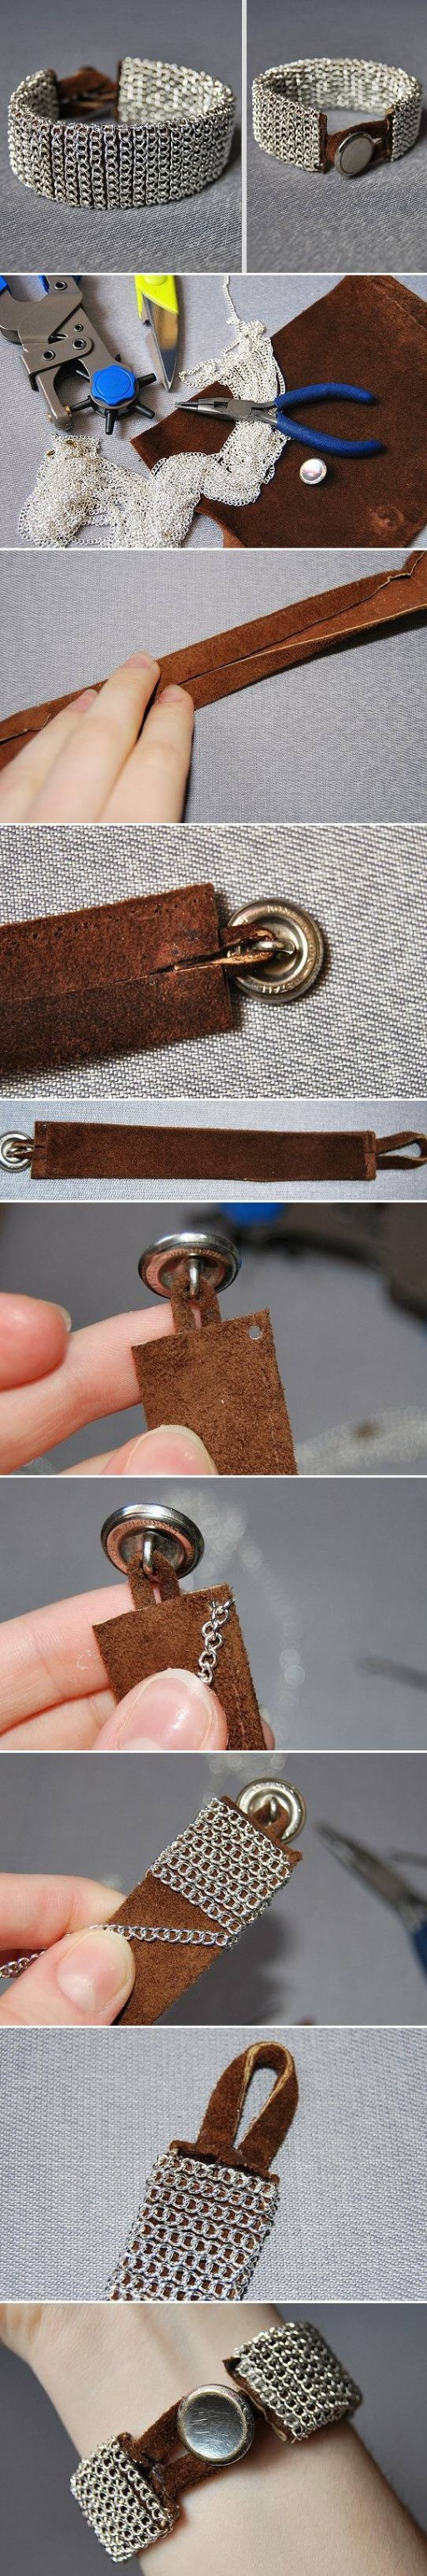 How To Make beautiful silver wrist bands step by step DIY tutorial instructions